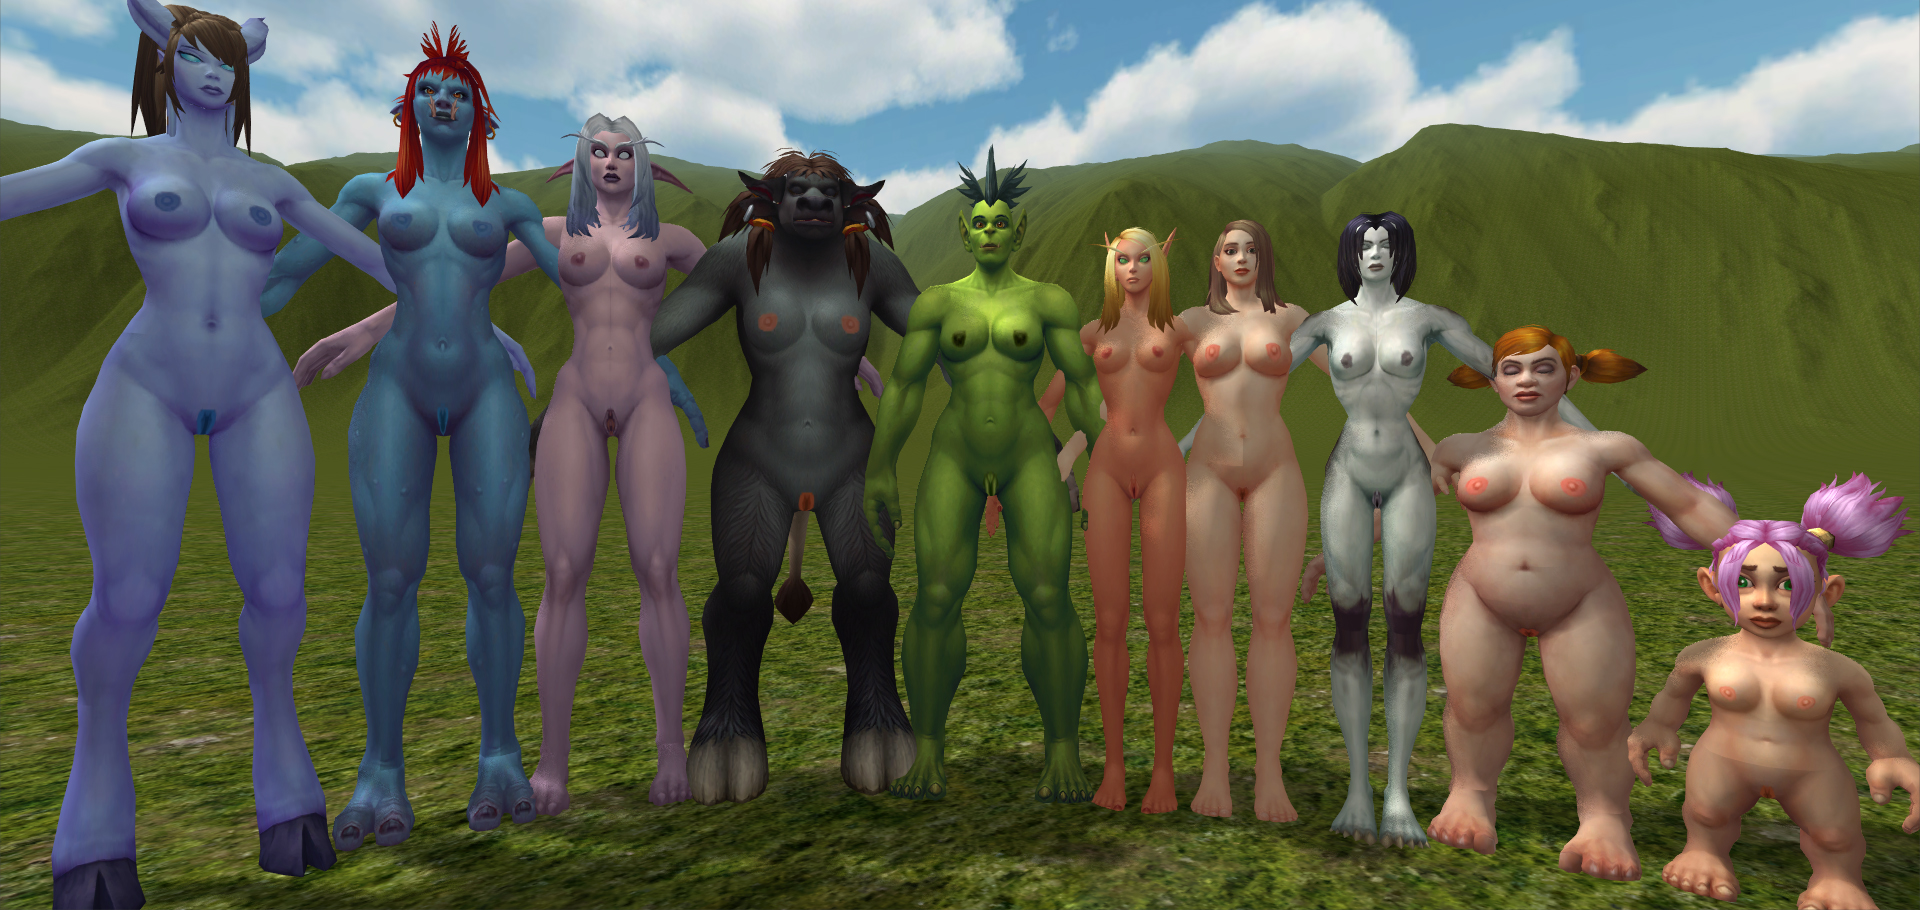 World of warcraft nud mods adult download